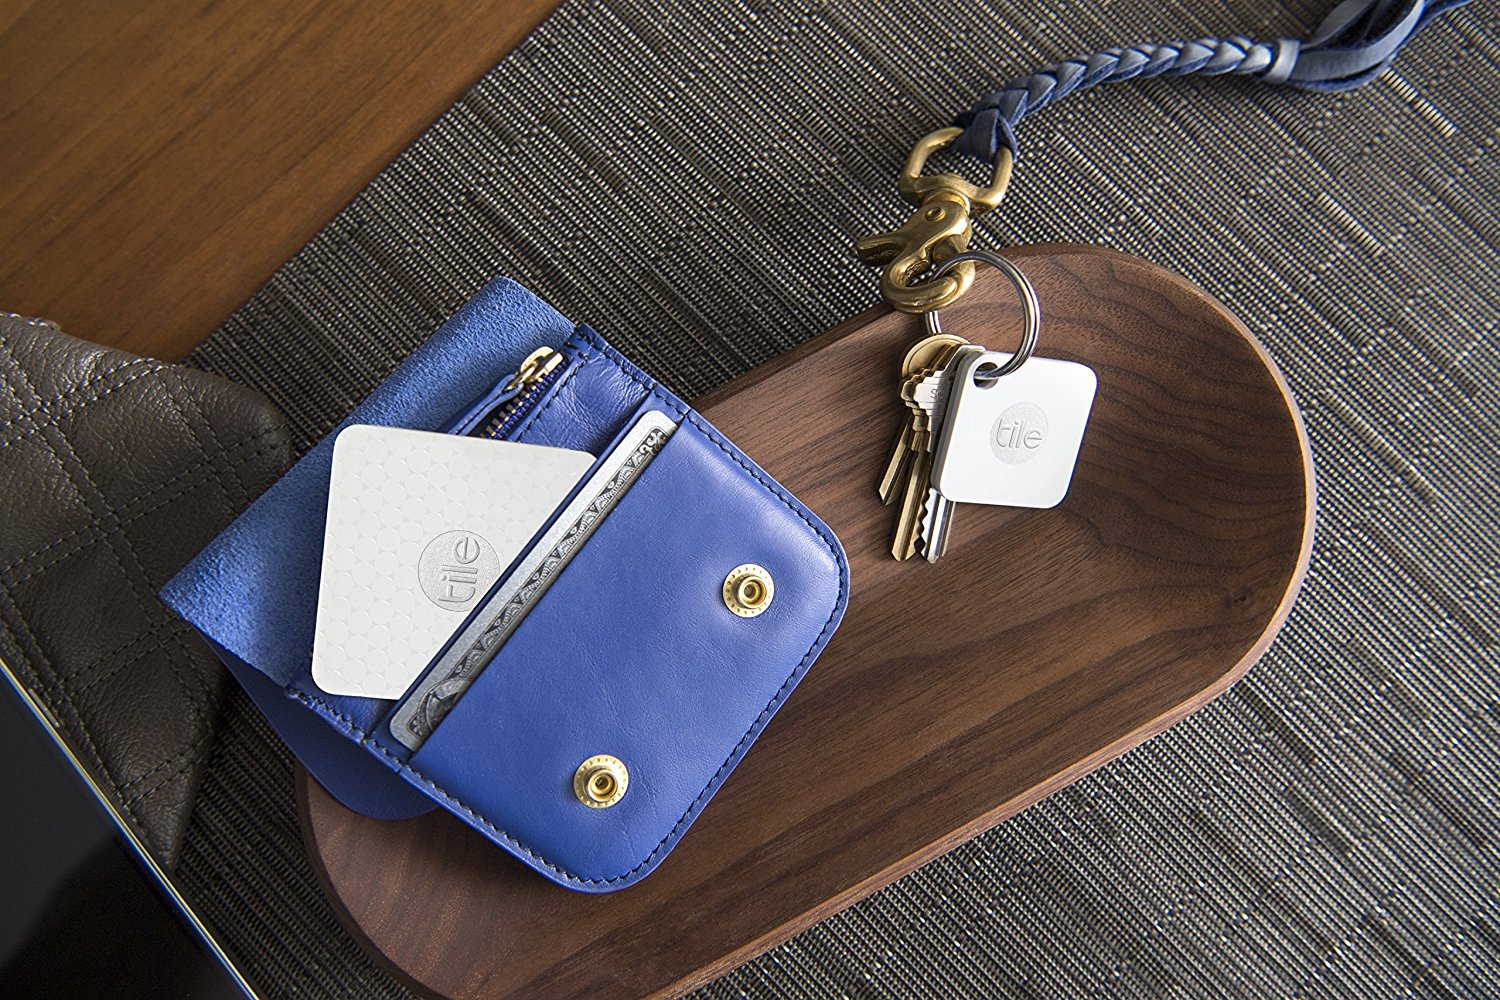 tile mate and slim combo pack key